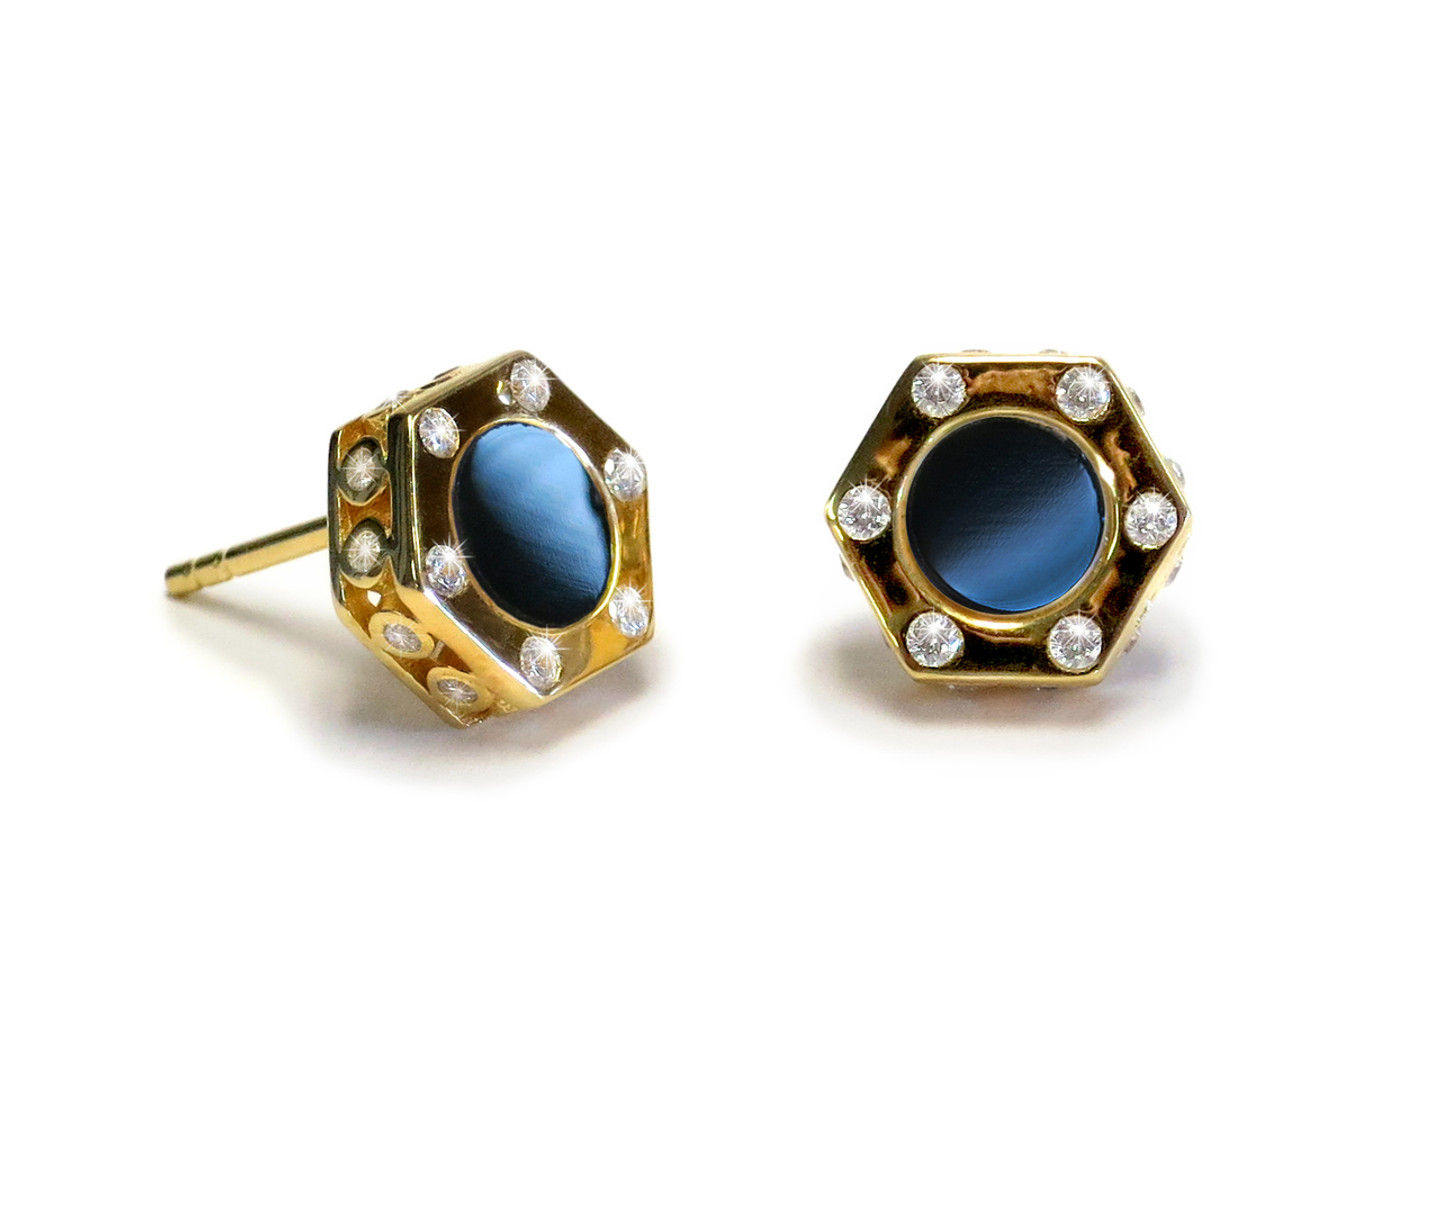 Monte Carlo Black Onyx Gold Stud Earrings